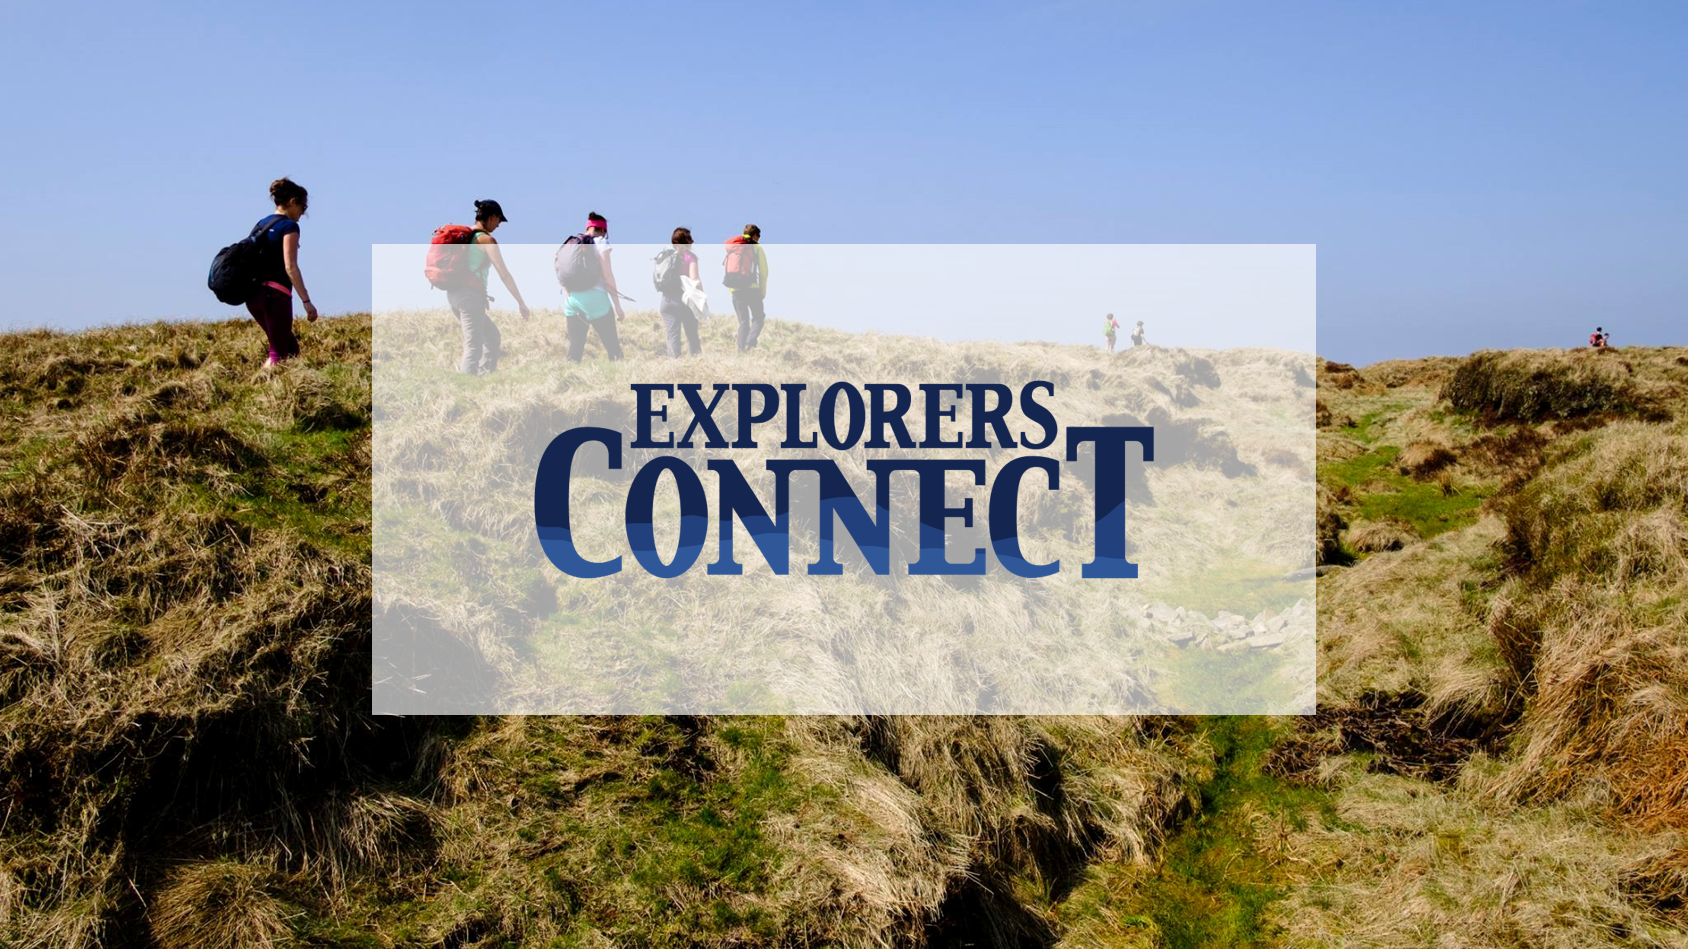 Explorers Connect: BRISTOL (www.explorersconnect.com)